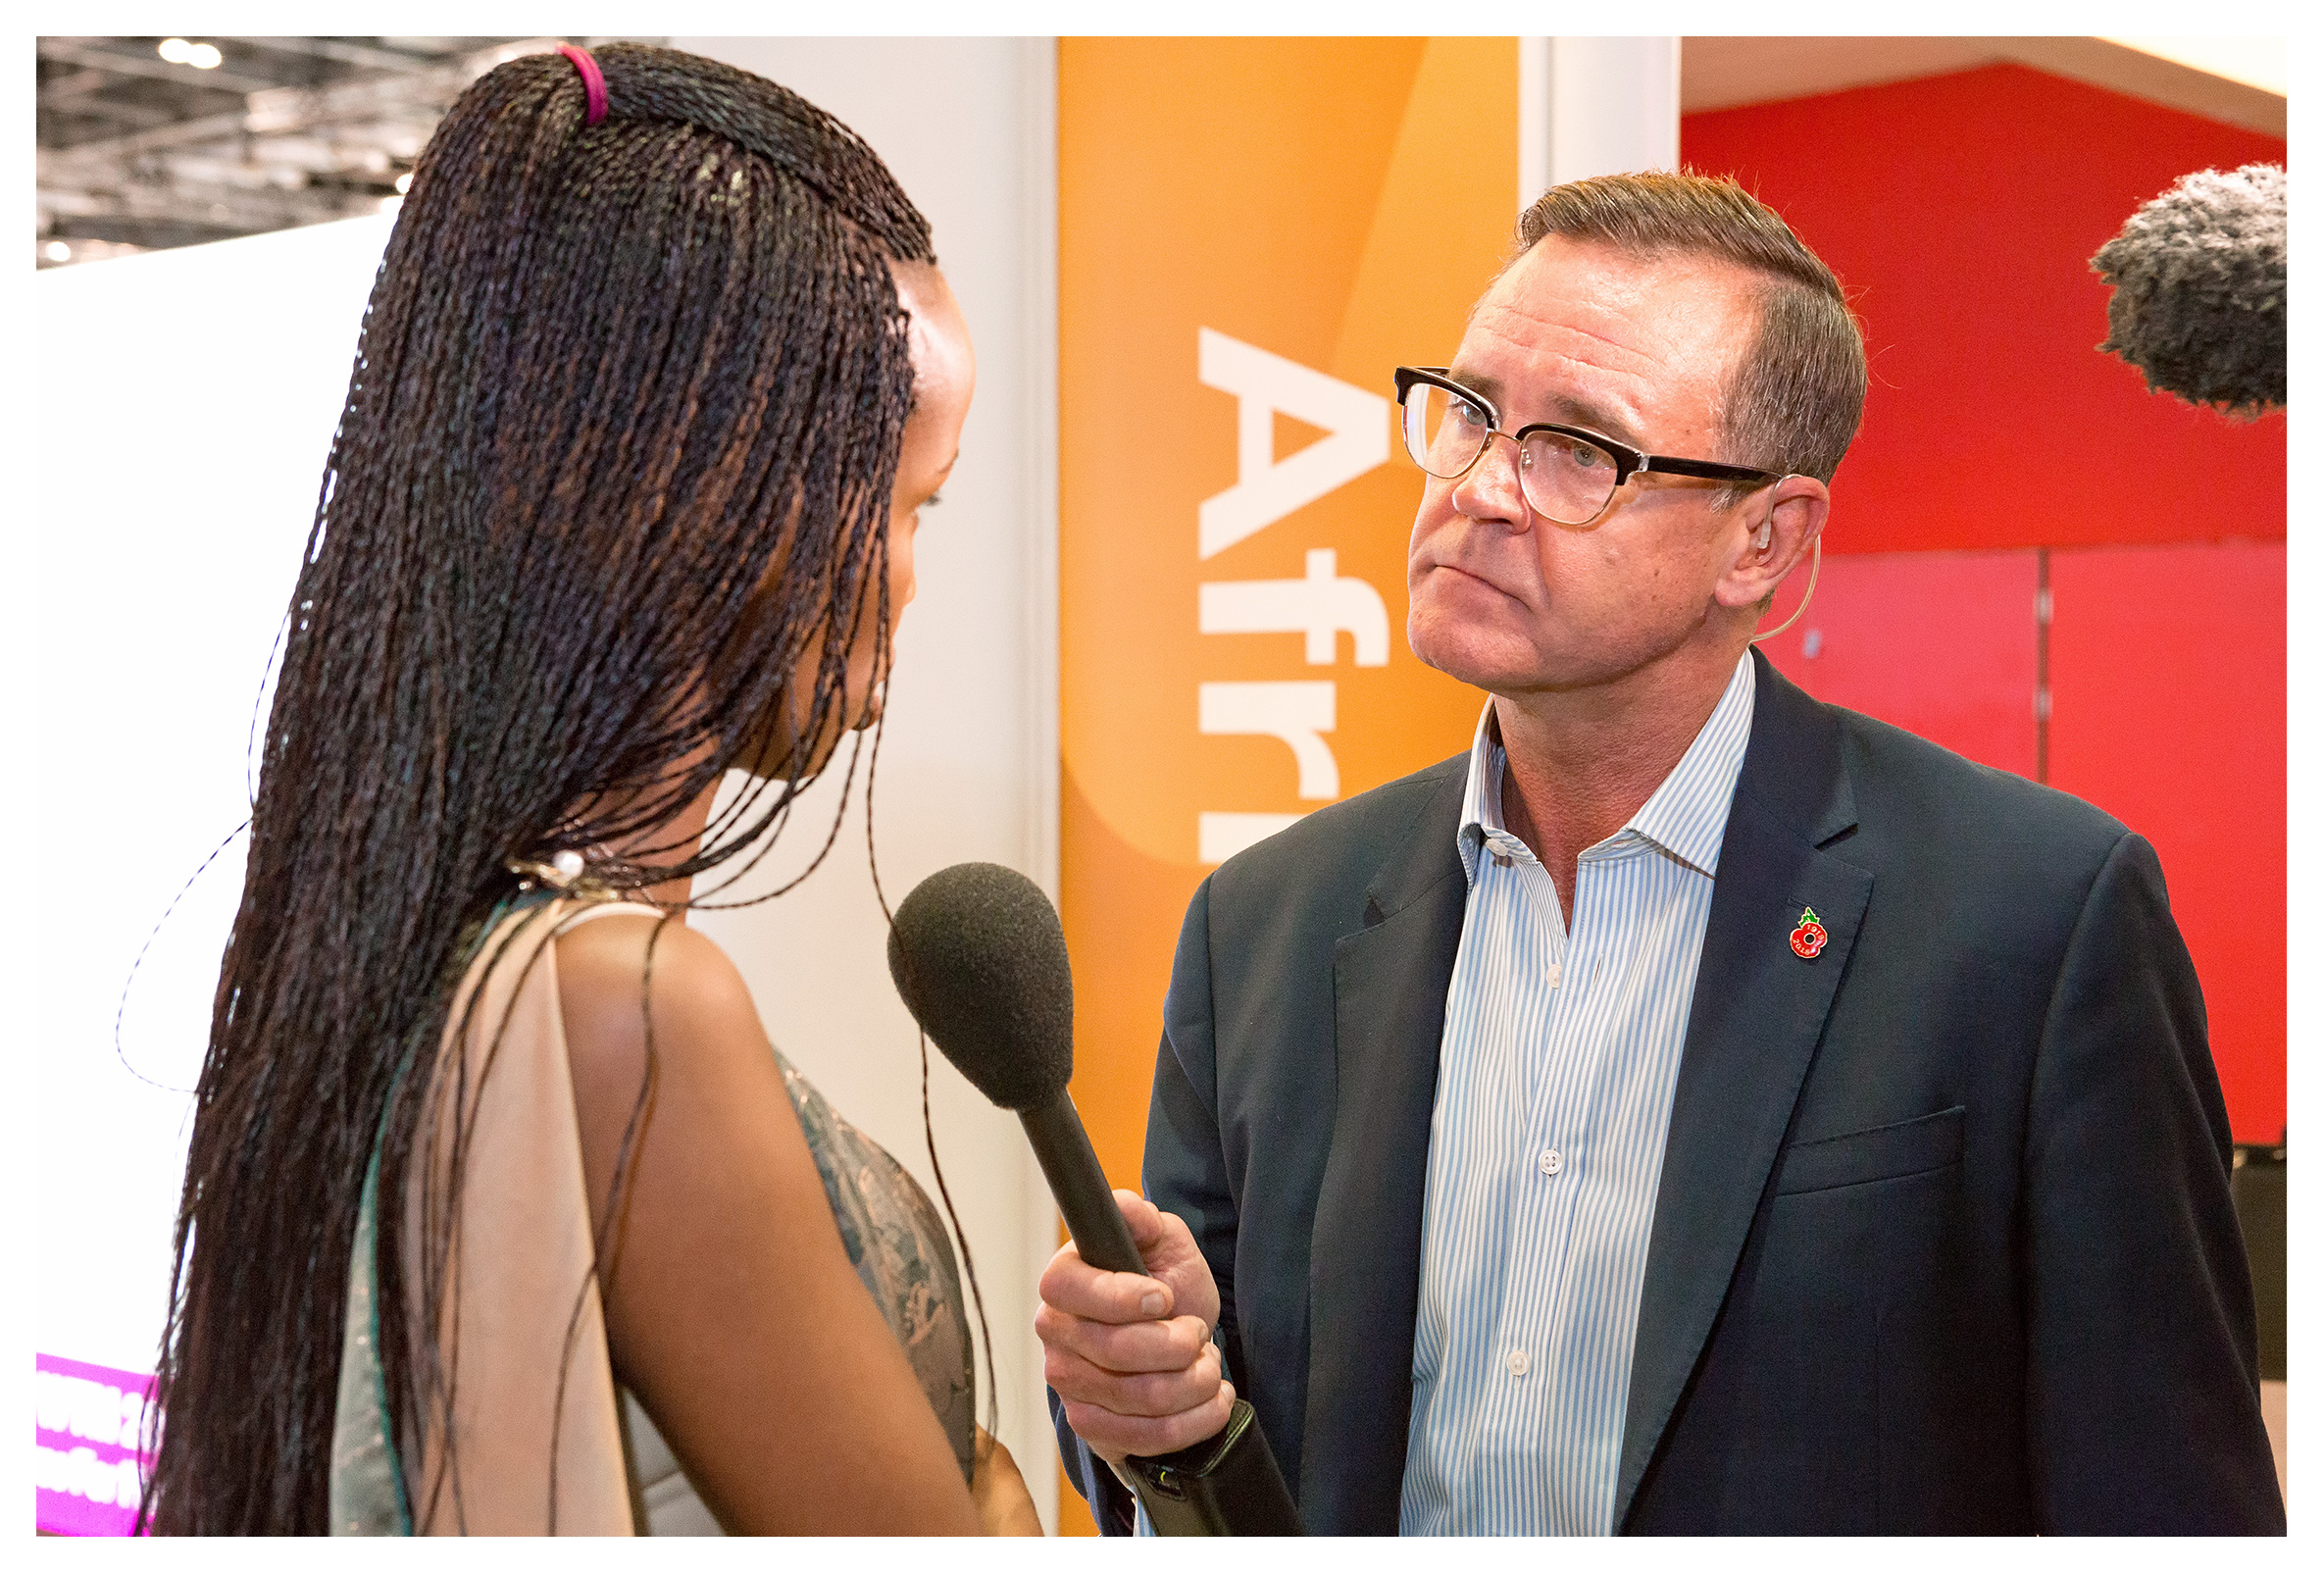 PR photography: Aaron Heslehurst BBC interview with Belise Kariza from the Rwanda Development Board, on Africa as a single tourism destination. World Travel Market 2018, ExCel London